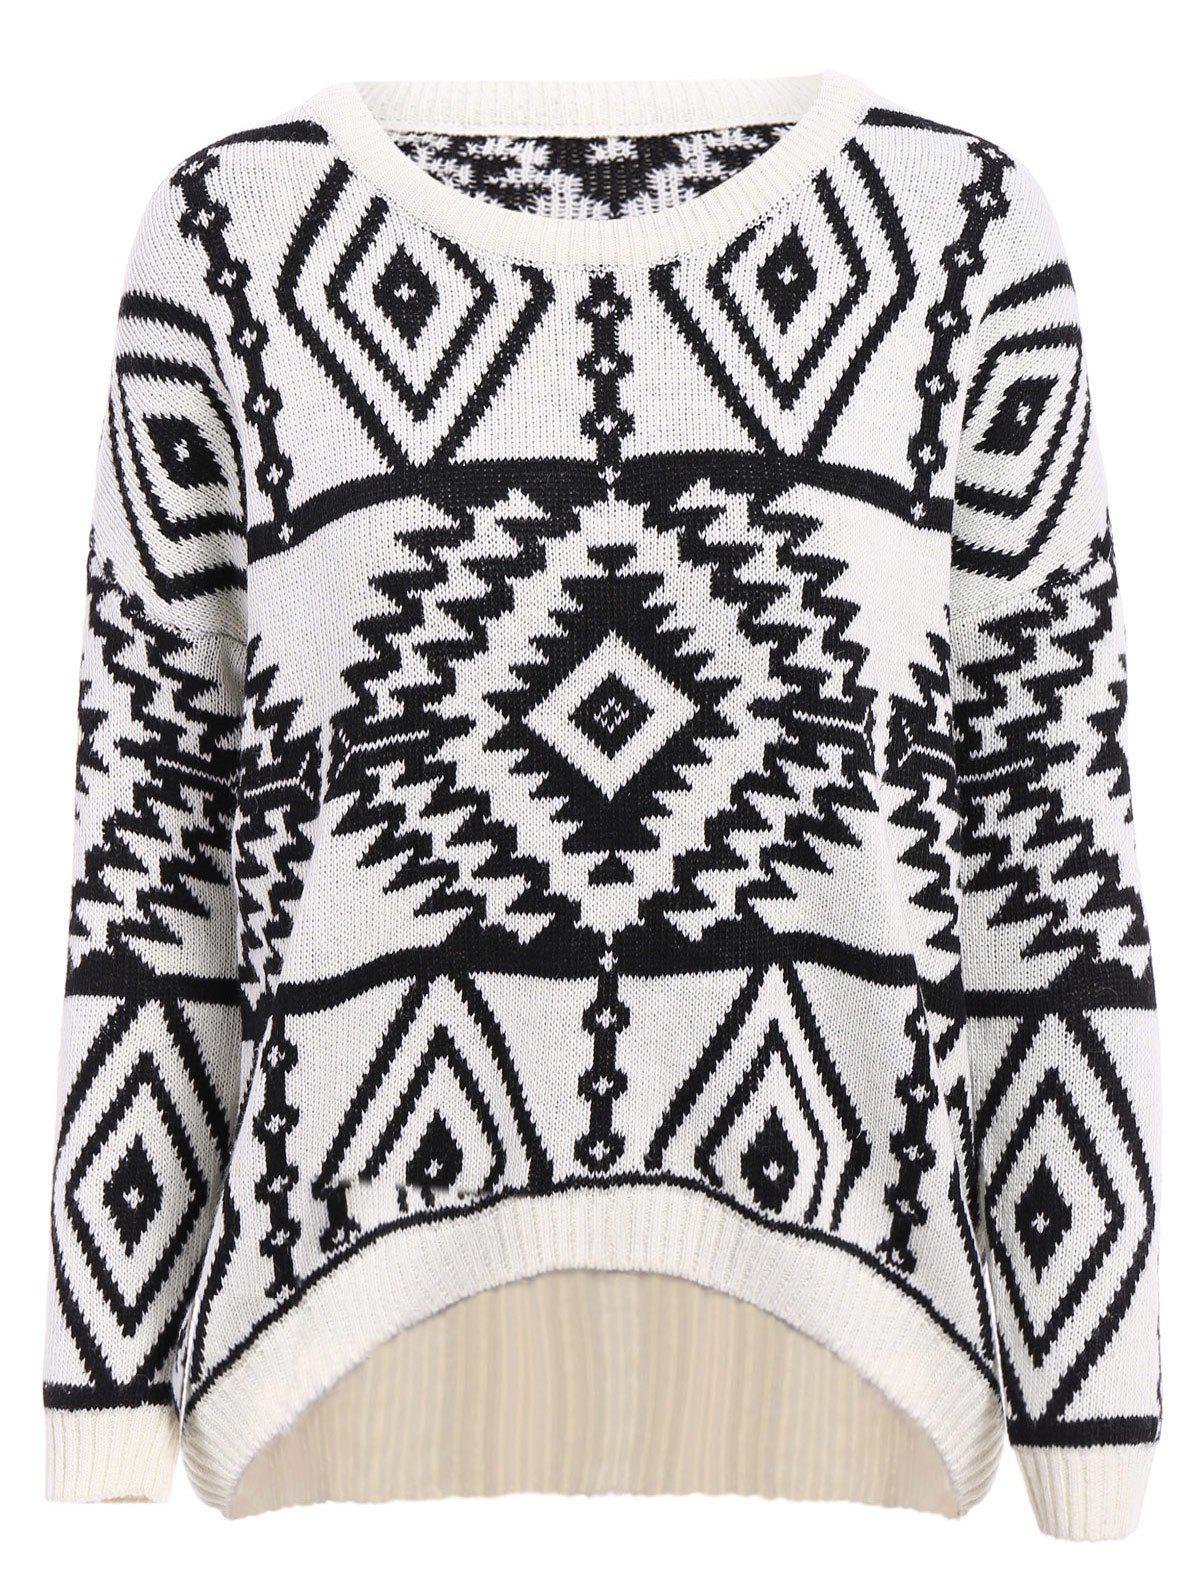 Stylish Round Collar Long Sleeve Asymmetrical Geometric Women's Sweater - OFF WHITE ONE SIZE(FIT SIZE XS TO M)